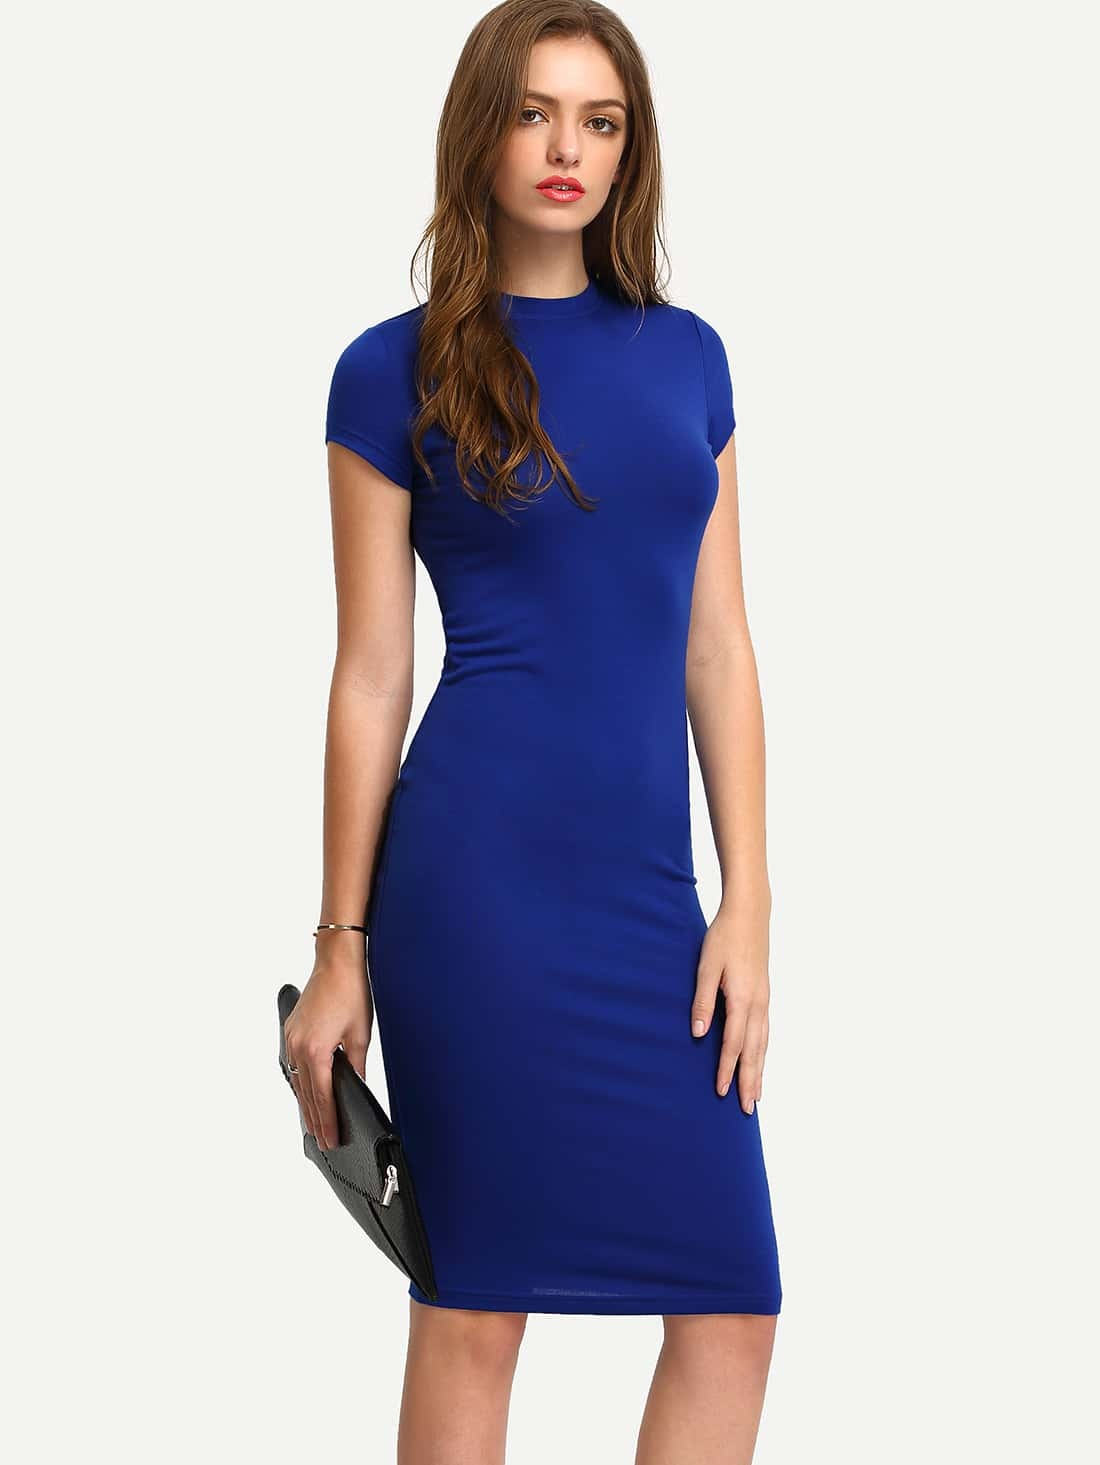 Blue Short Sleeve Knee Length Bodycon Dress EmmaCloth-Women Fast ...